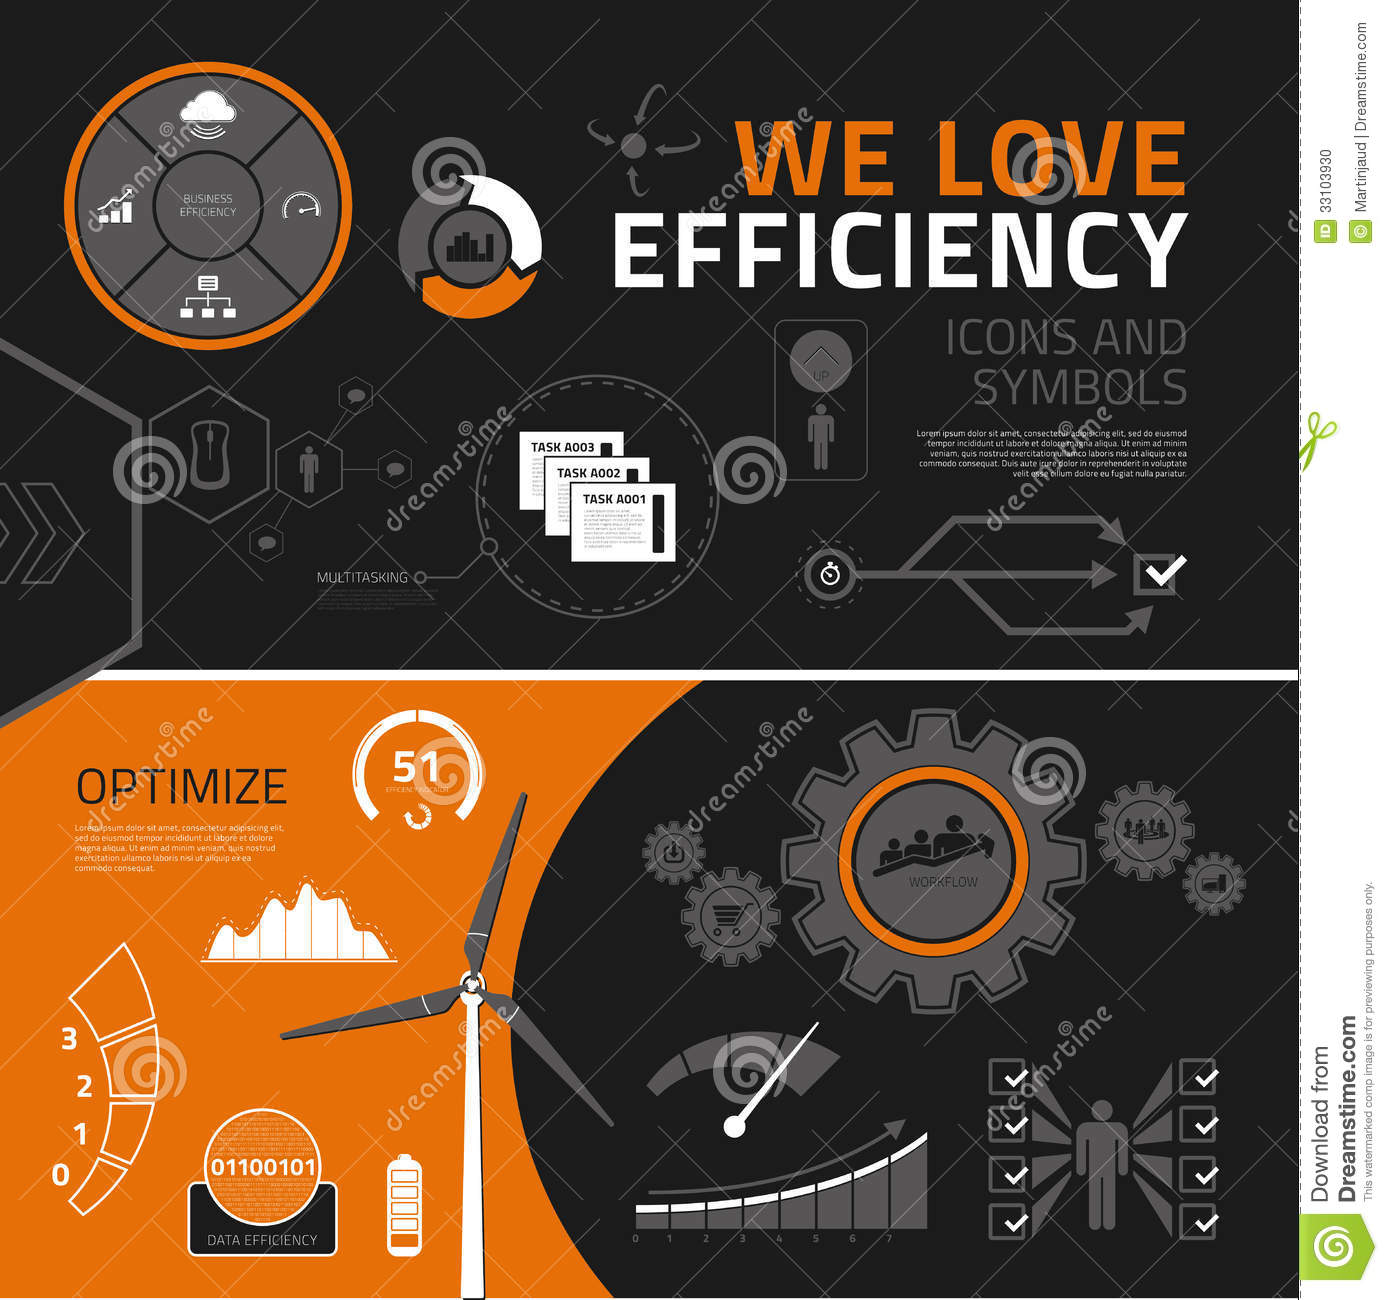 Efficiency Infographic Elements  Icons And Symbols Stock Photo